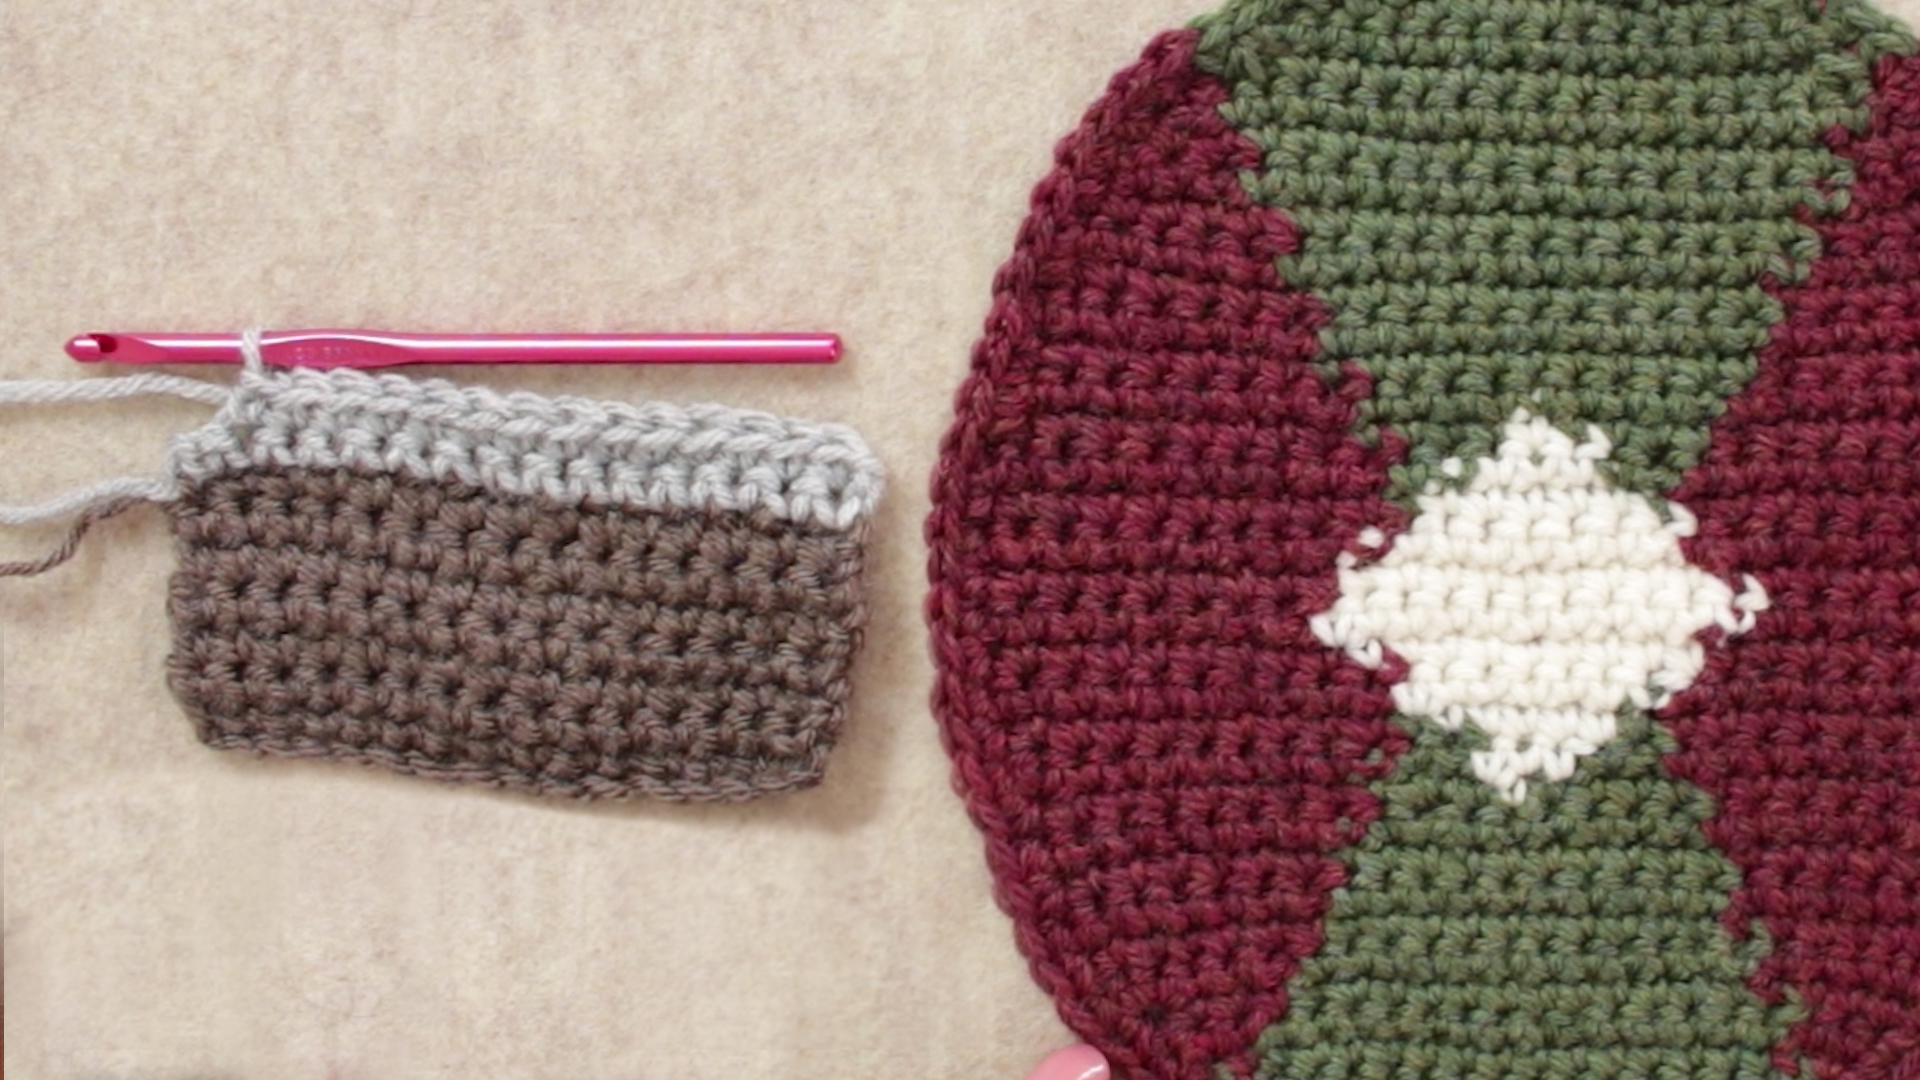 Quick Stitches & Tips: How to Change Yarn Colors